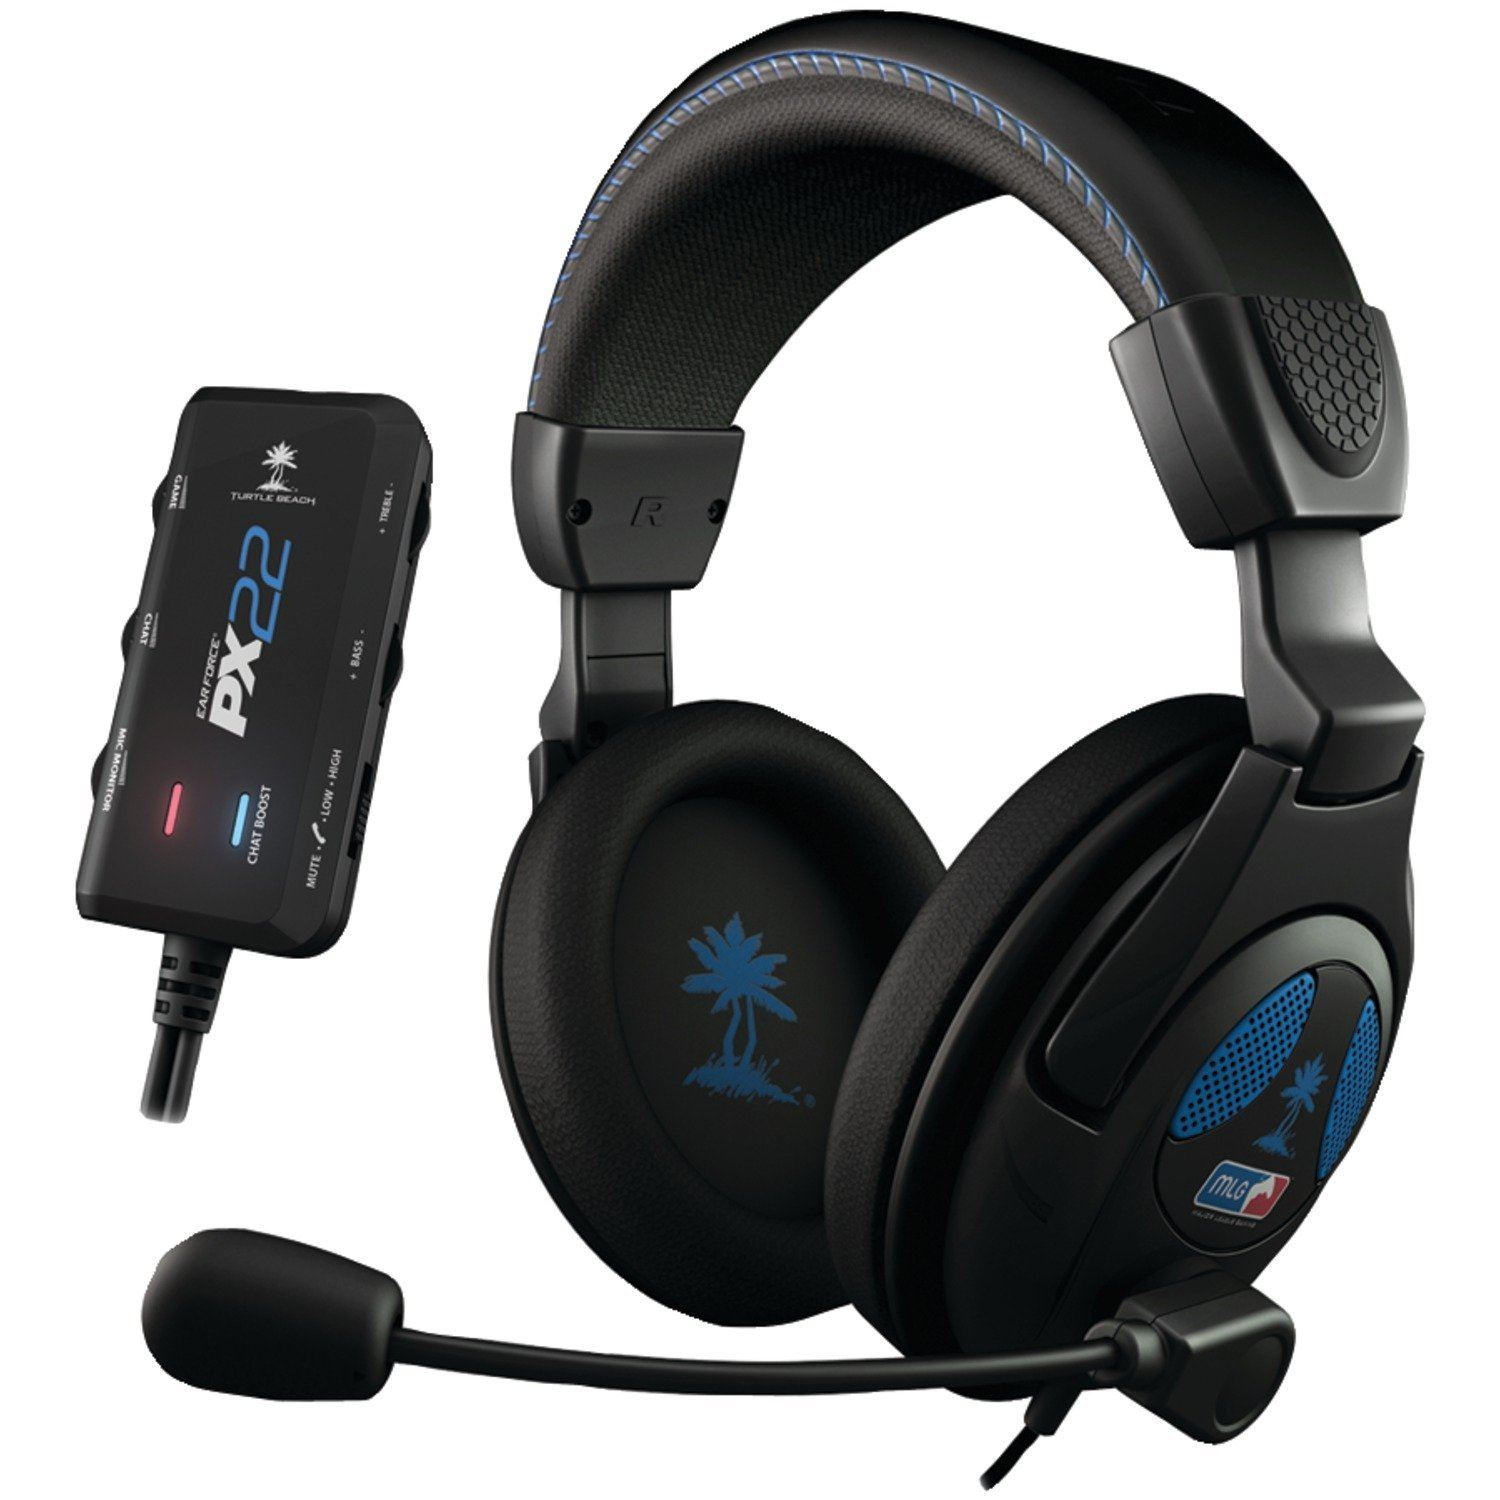 turtle beach ear force px22 amplified gaming headset ps3. Black Bedroom Furniture Sets. Home Design Ideas